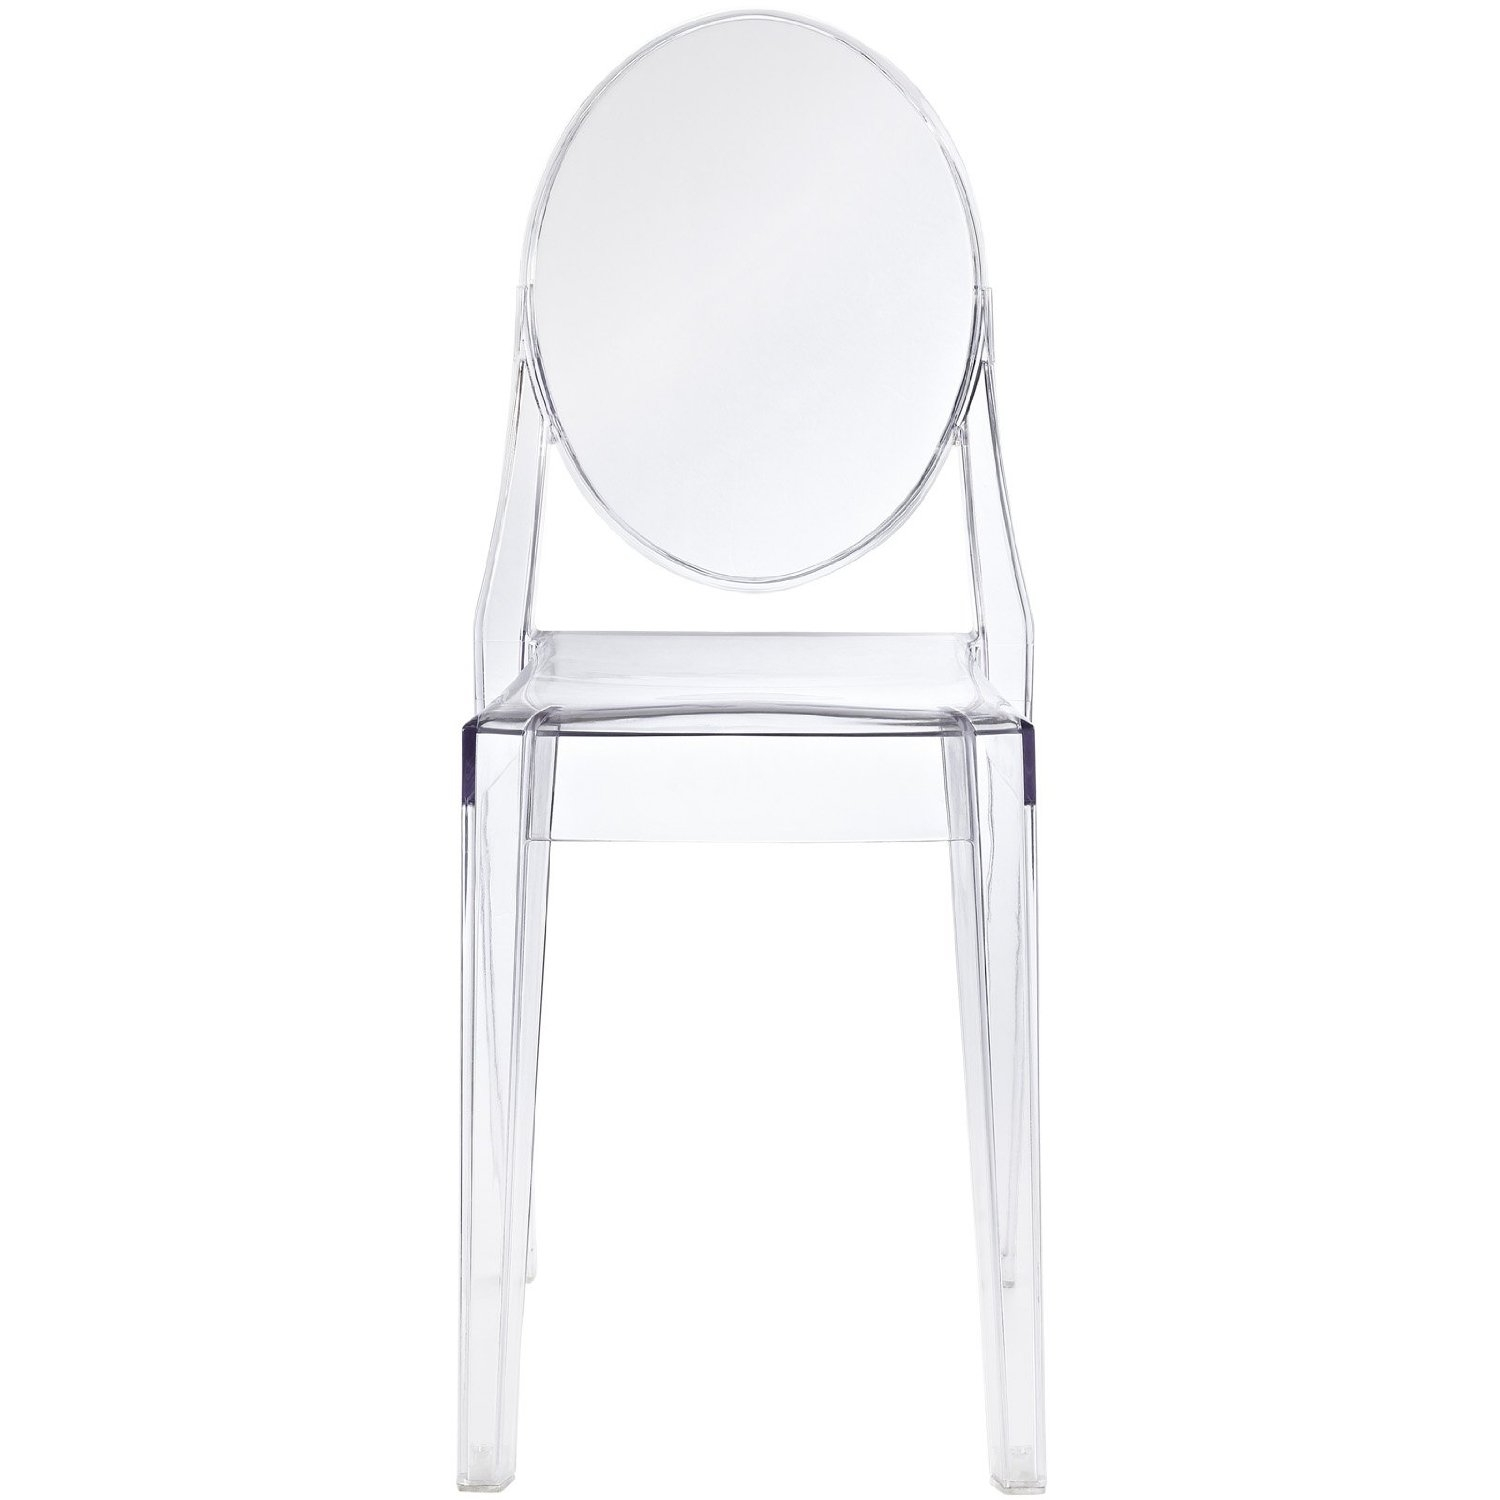 """Combine artistic endeavors into a unified vision of harmony and grace with this Stackable Clear Acrylic Dining Chair for Indoor or Outdoor Use. Allow bursts of creative energy to reach every aspect of your contemporary living space as this masterpiece reinvents your surroundings. Surprisingly sturdy and durable, the Ghost Chair is appropriate for any room or outdoor setting. Pure perception awaits, as shining moments of brilliance turn visual vacuums into new realms of transcendence. This item is a high quality reproduction of the original. Overall Product Dimensions: 36""""H x 15""""W x 19""""D Seat height: 18.5"""" Item Ships Small Package Carrier."""